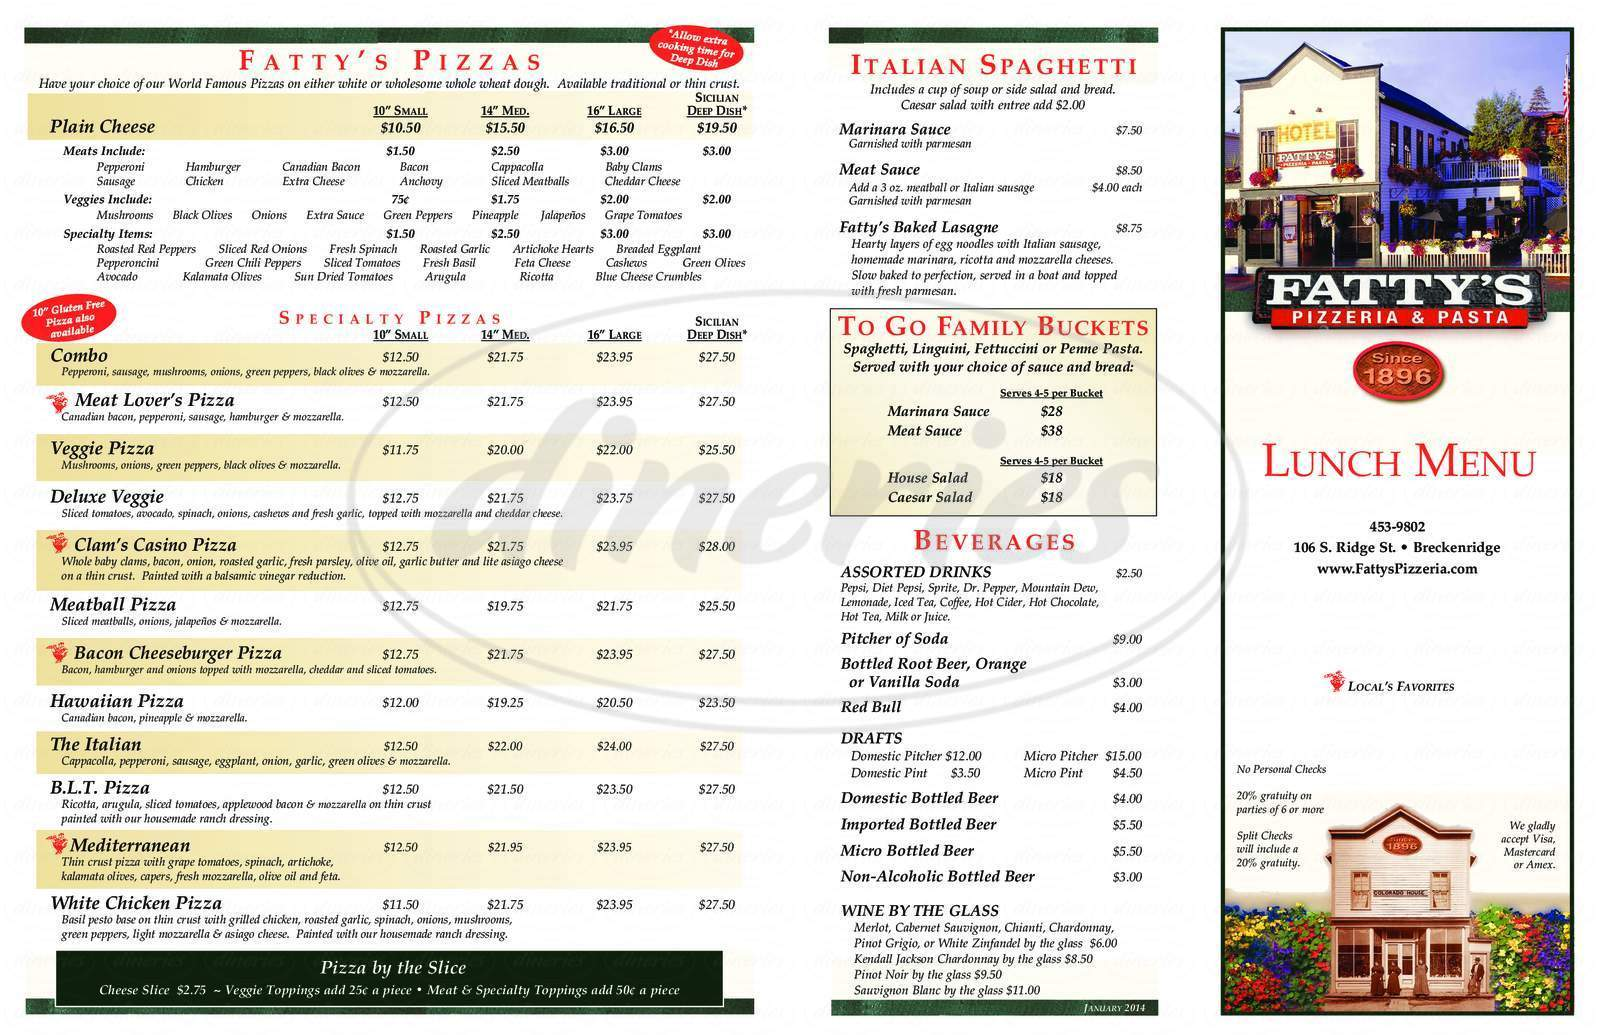 menu for Fatty's Pizzeria